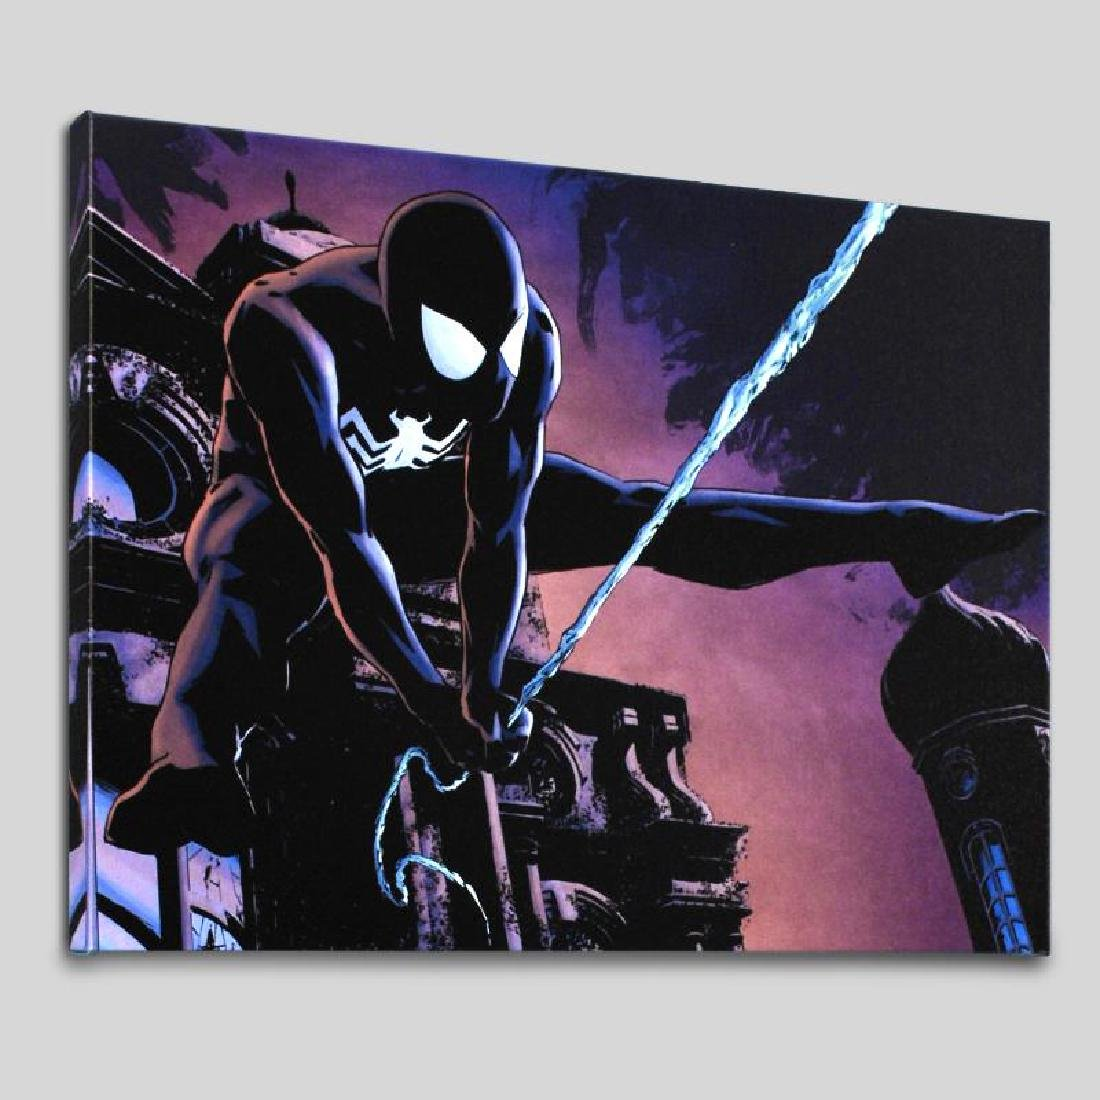 The Amazing Spider-Man #637 by Marvel Comics